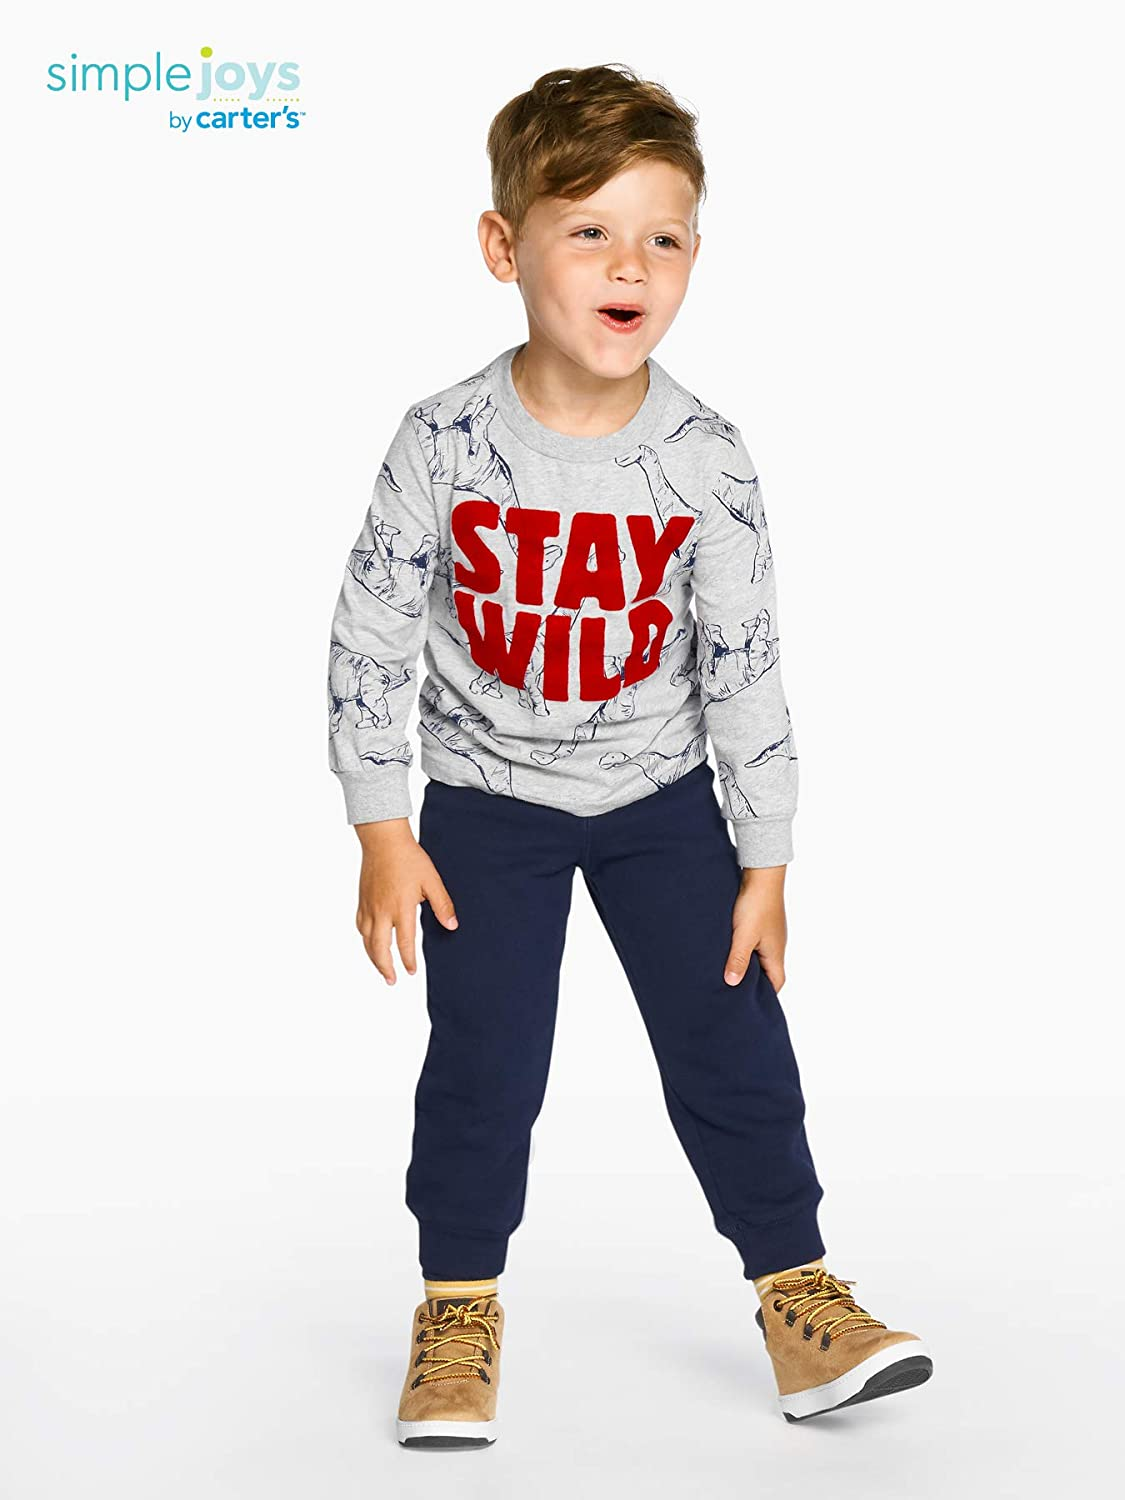 Simple Joys by Carters Toddler Boys 3-Pack Graphic Long-Sleeve Tees